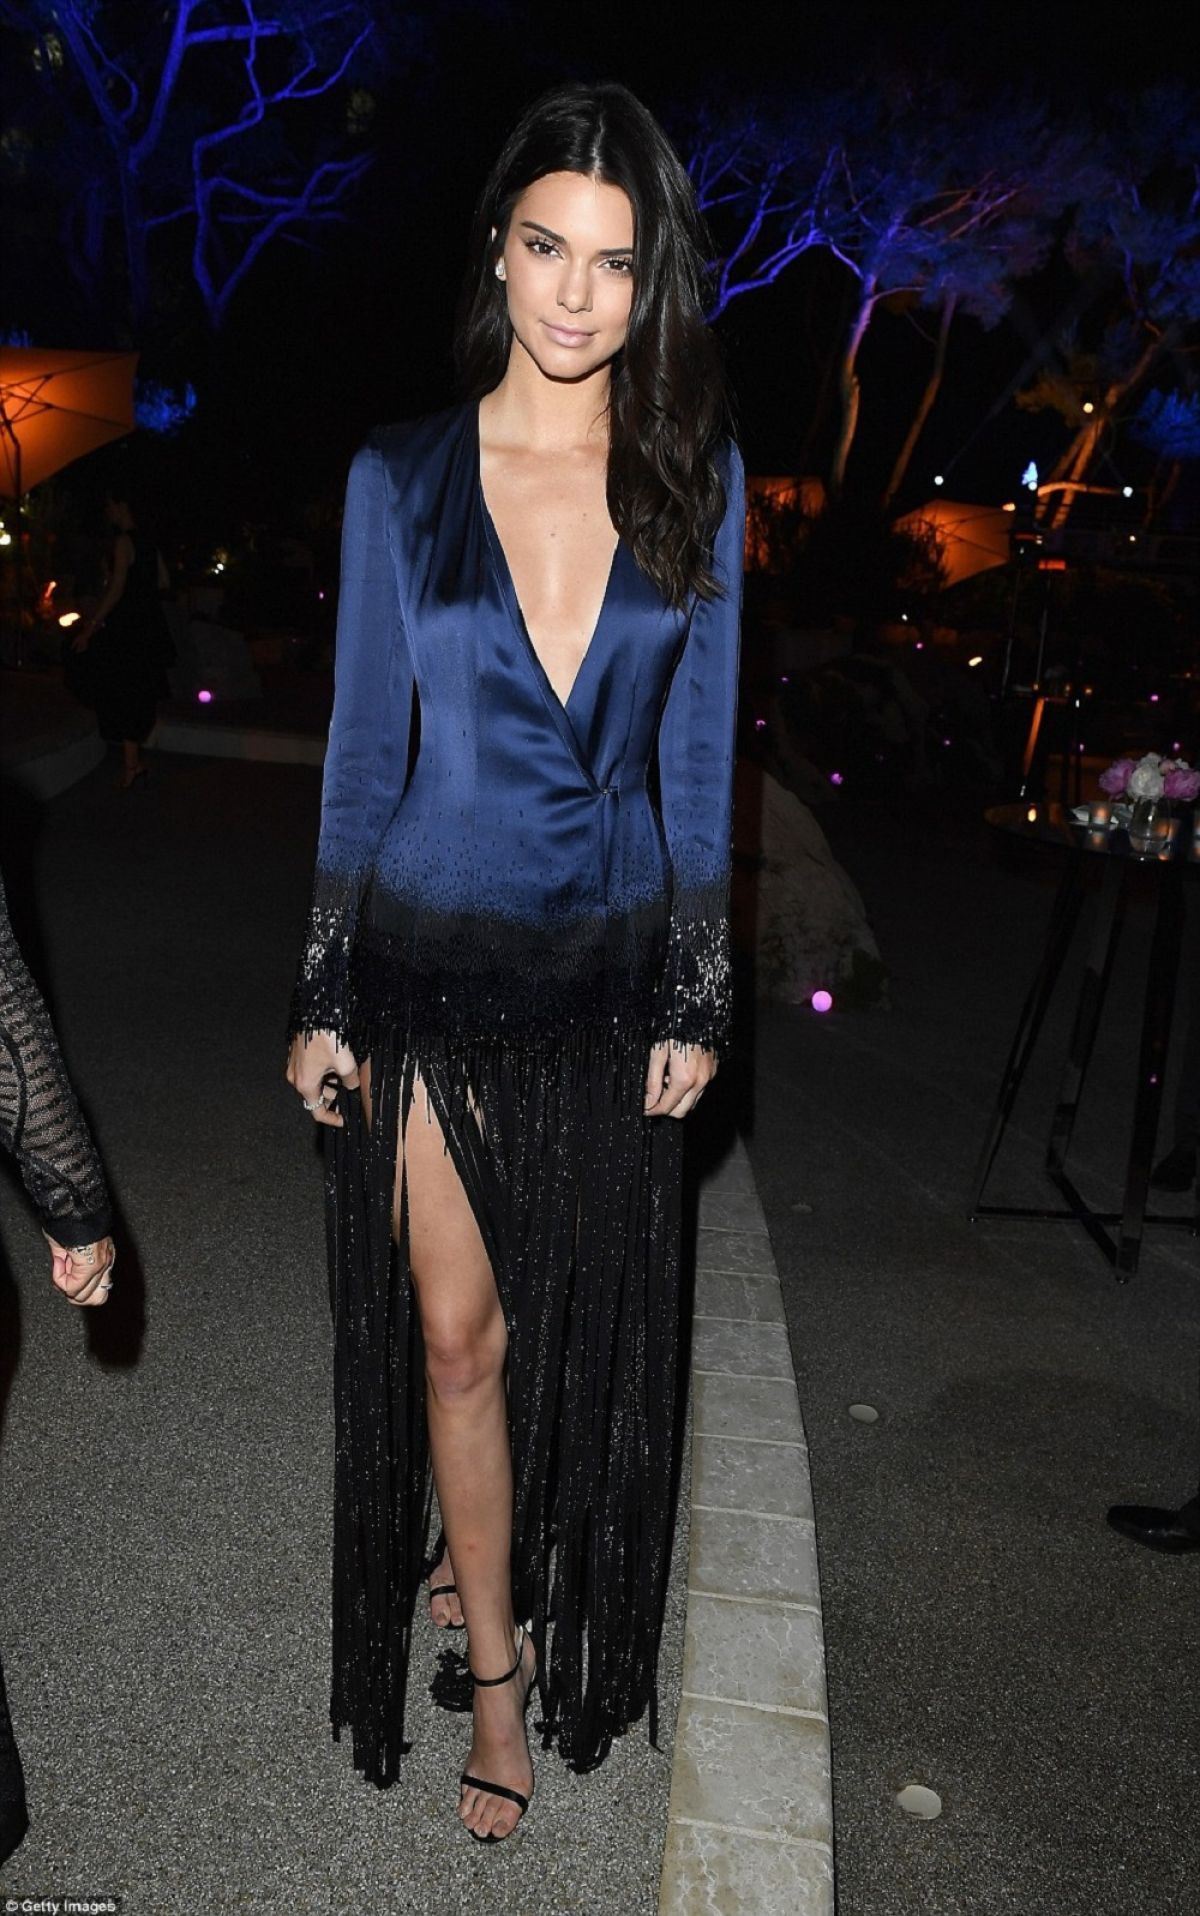 kendall-jenner-at-vanity-fair-chopard-after-party-in-cannes-05-14 ...